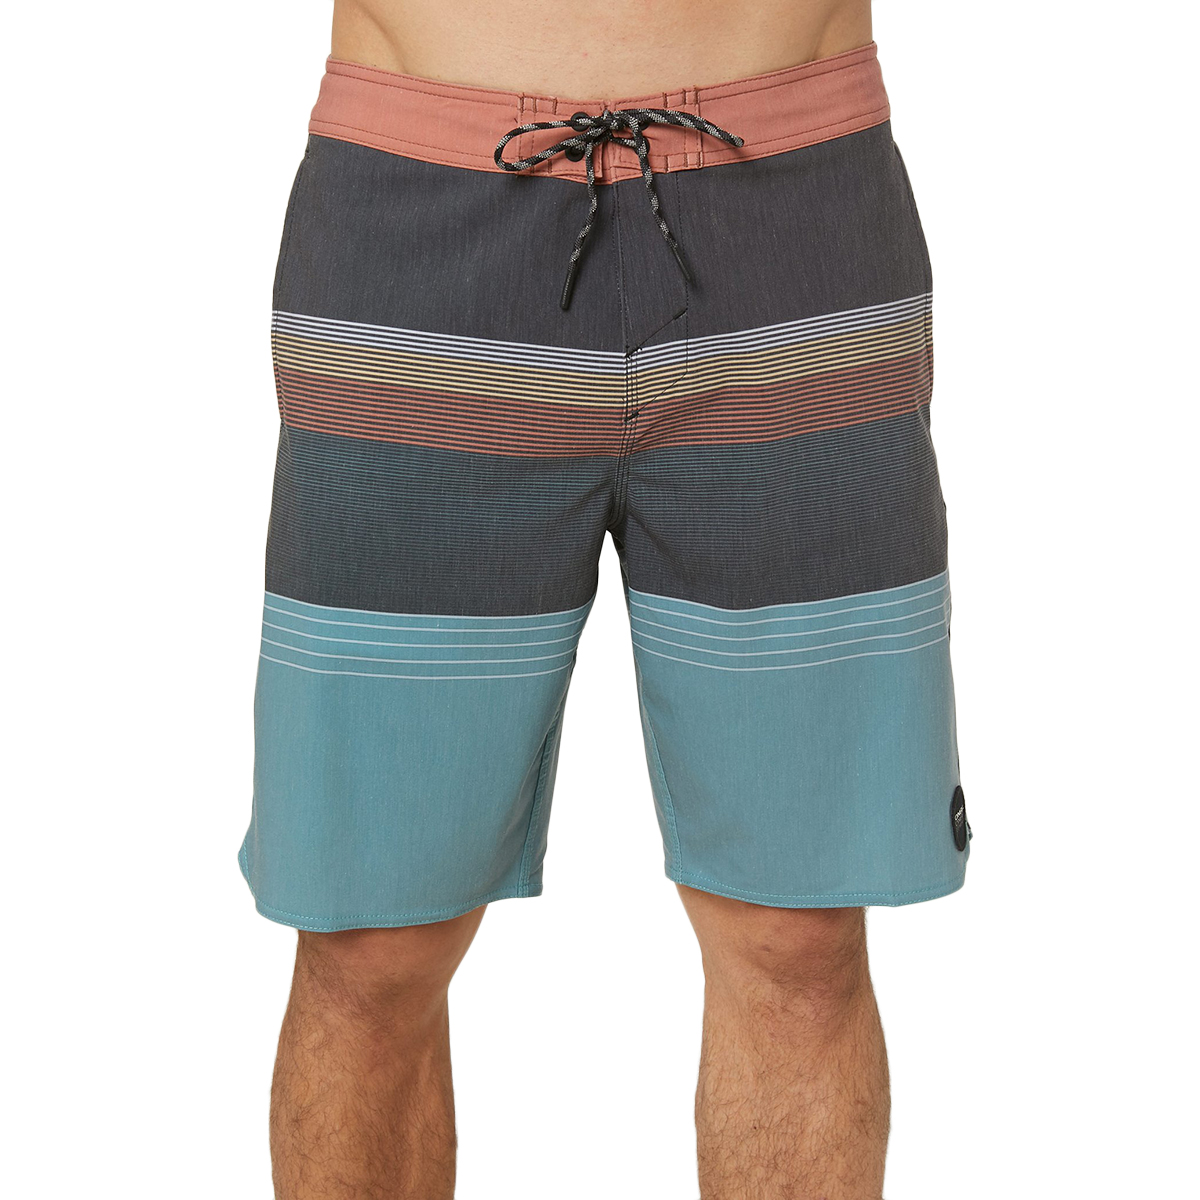 O'neill Men's Cruzer Boardshorts - Black, 34